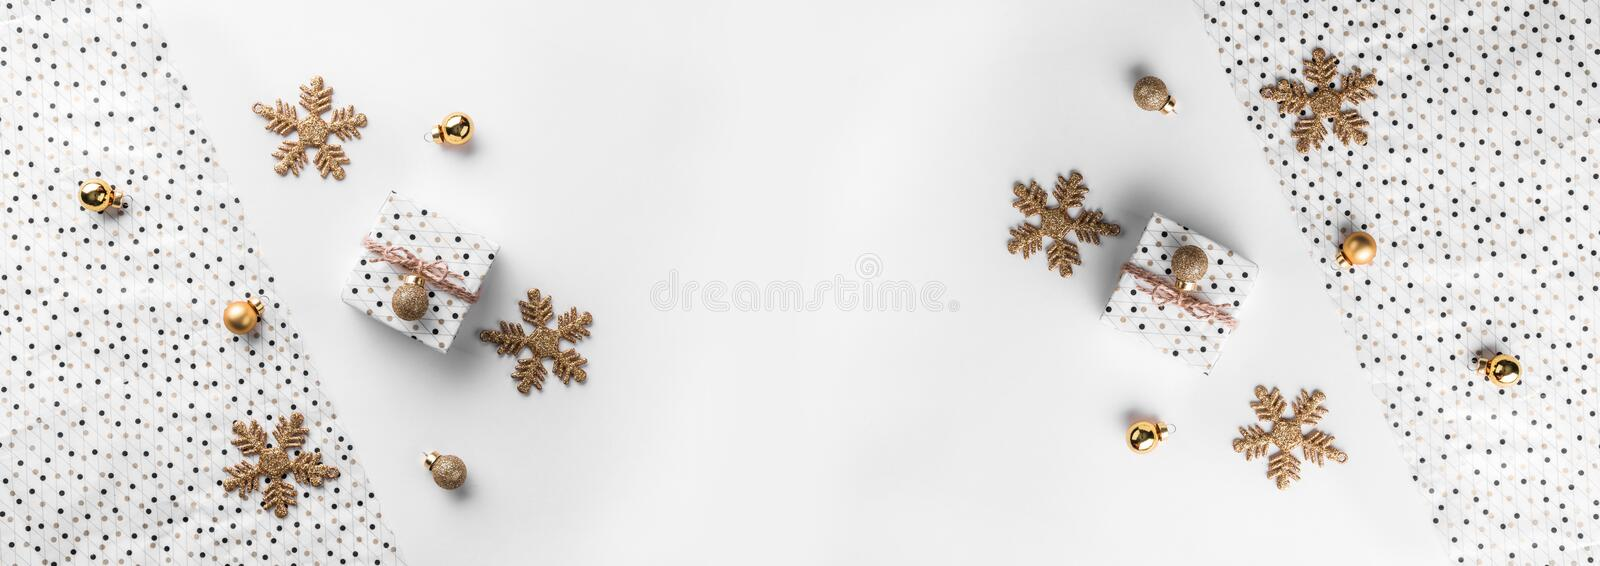 Christmas gift boxes on wrap background with gold decoration and pine cones. Xmas and Happy New Year theme. Flat lay, top view, wide composition royalty free stock photo